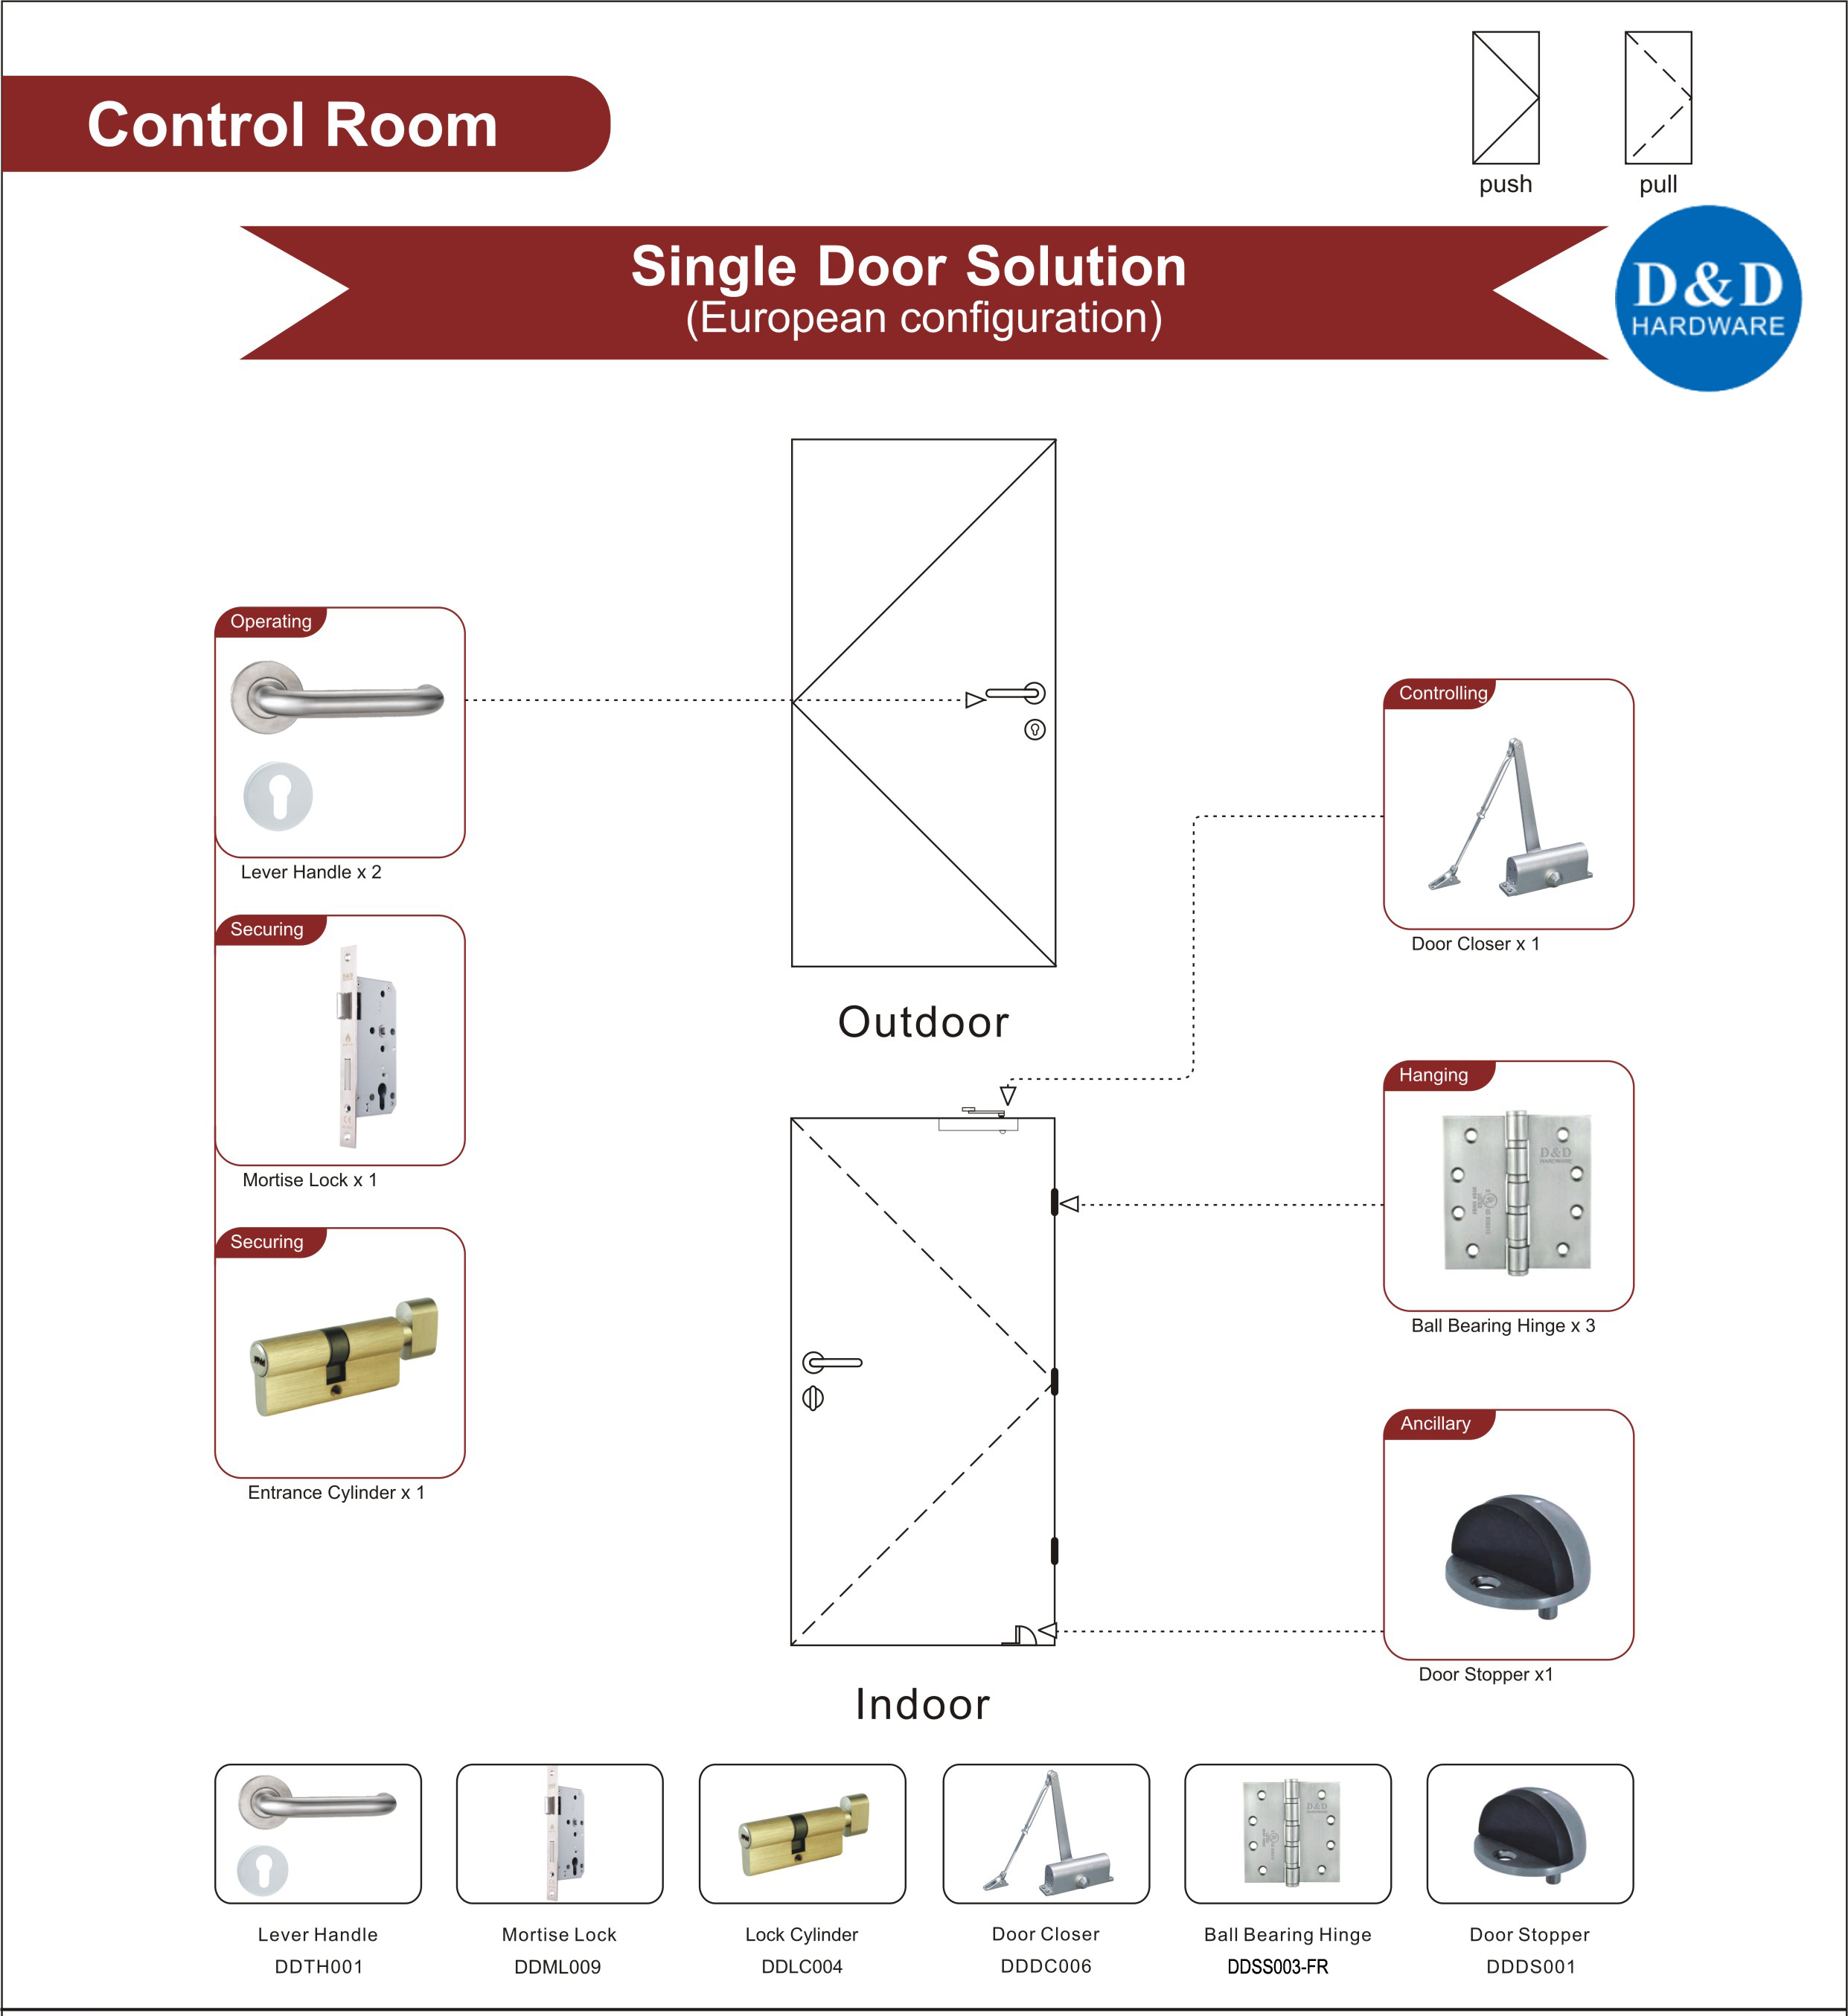 Wooden Fire Rated Door Ironmongery for Control Room Single Door